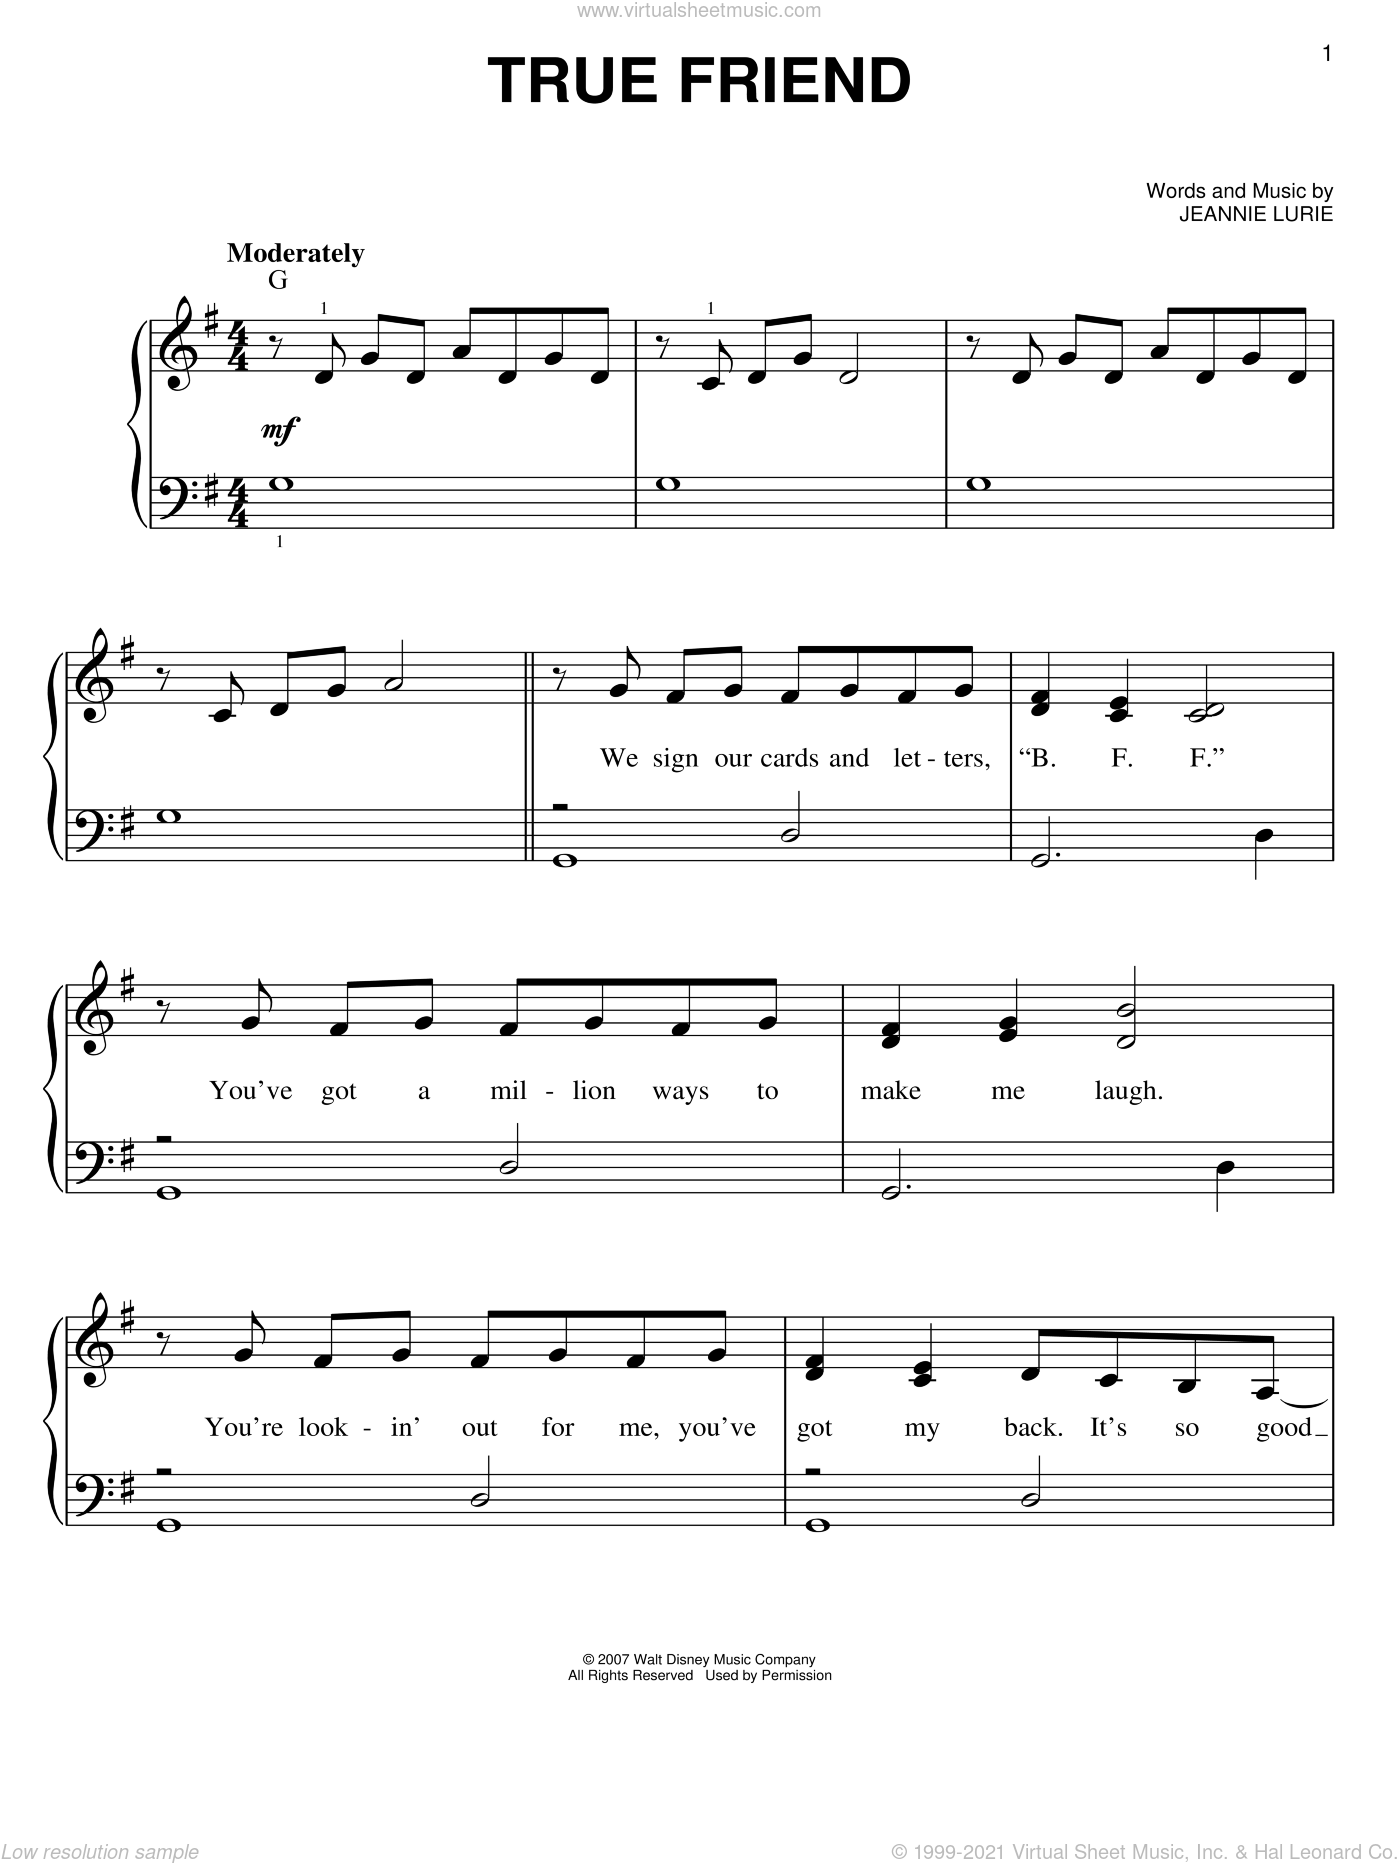 True Friend sheet music for piano solo (chords) by Jeannie Lurie